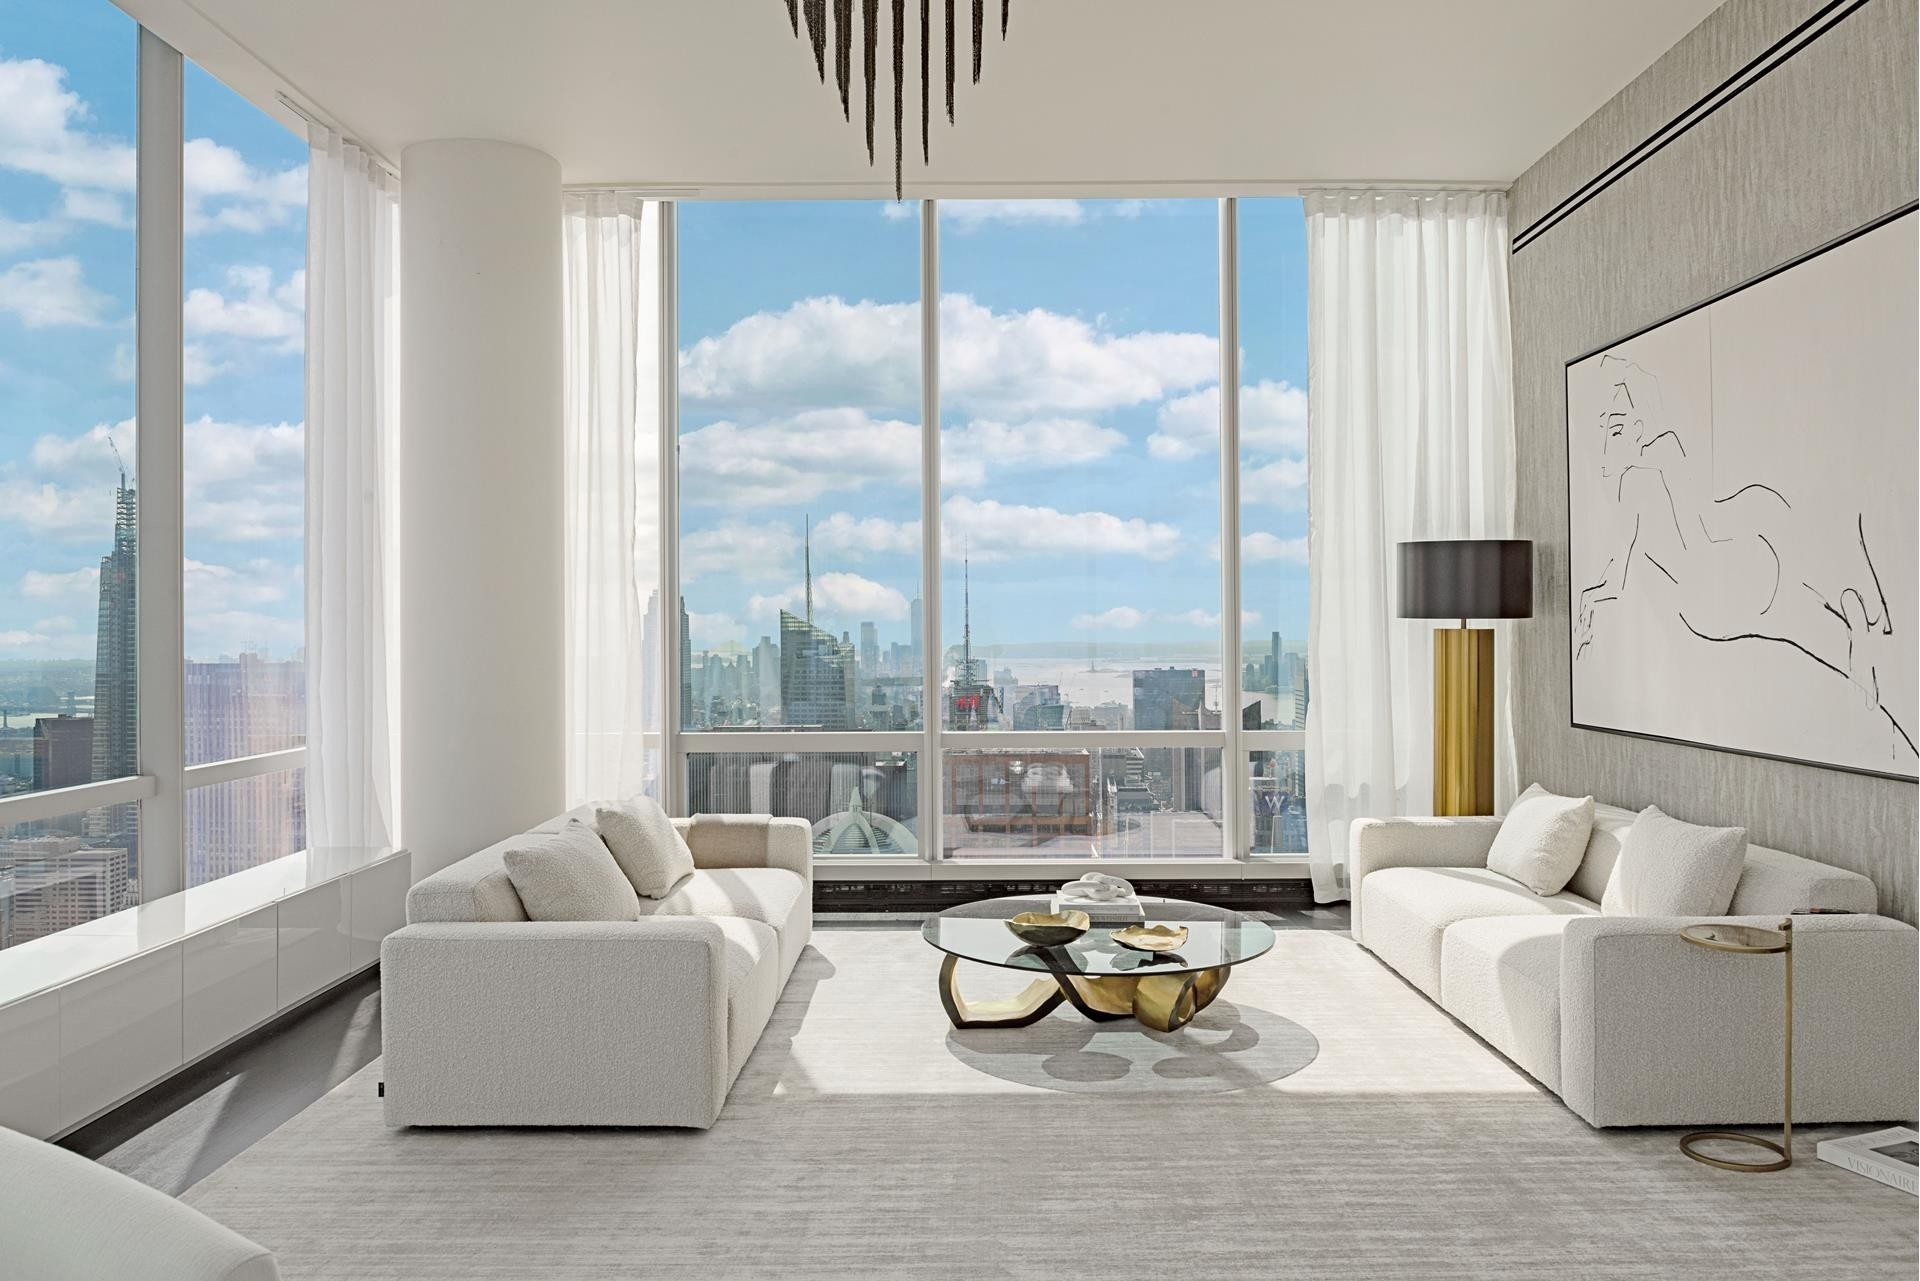 15. Condominiums for Sale at One57, 157 West 57th St, 87 Midtown West, New York, NY 10019